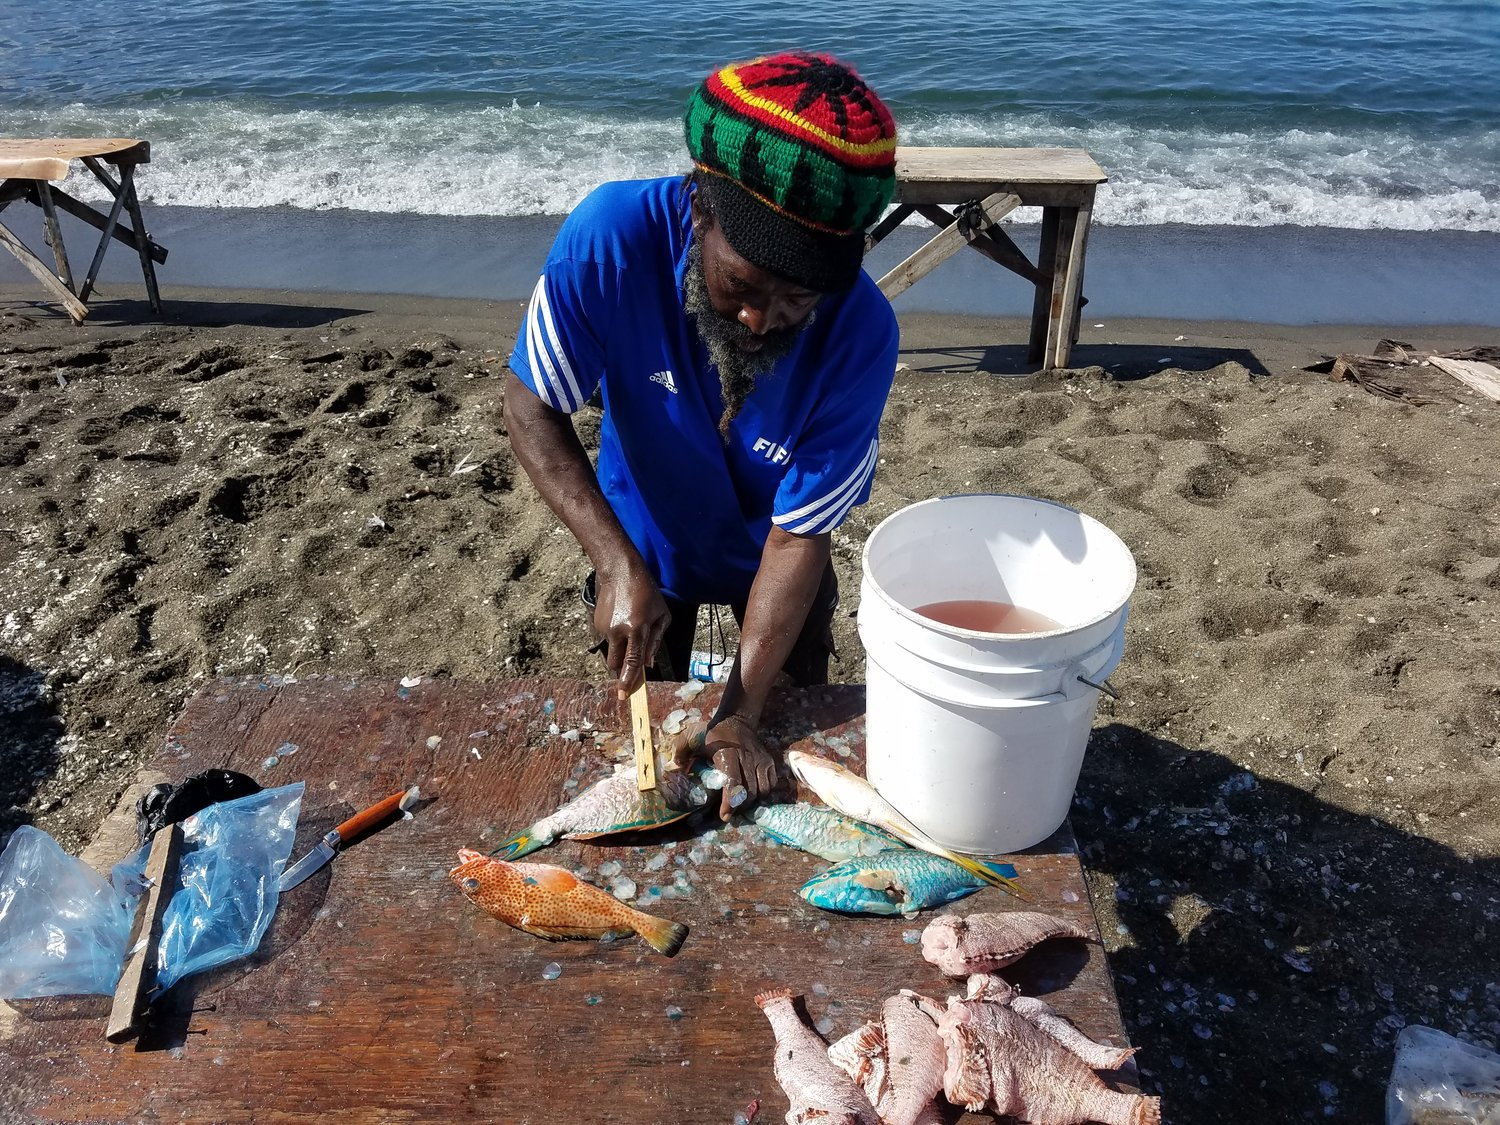 Fish+cleaning+in+St.+Kitts.jpg